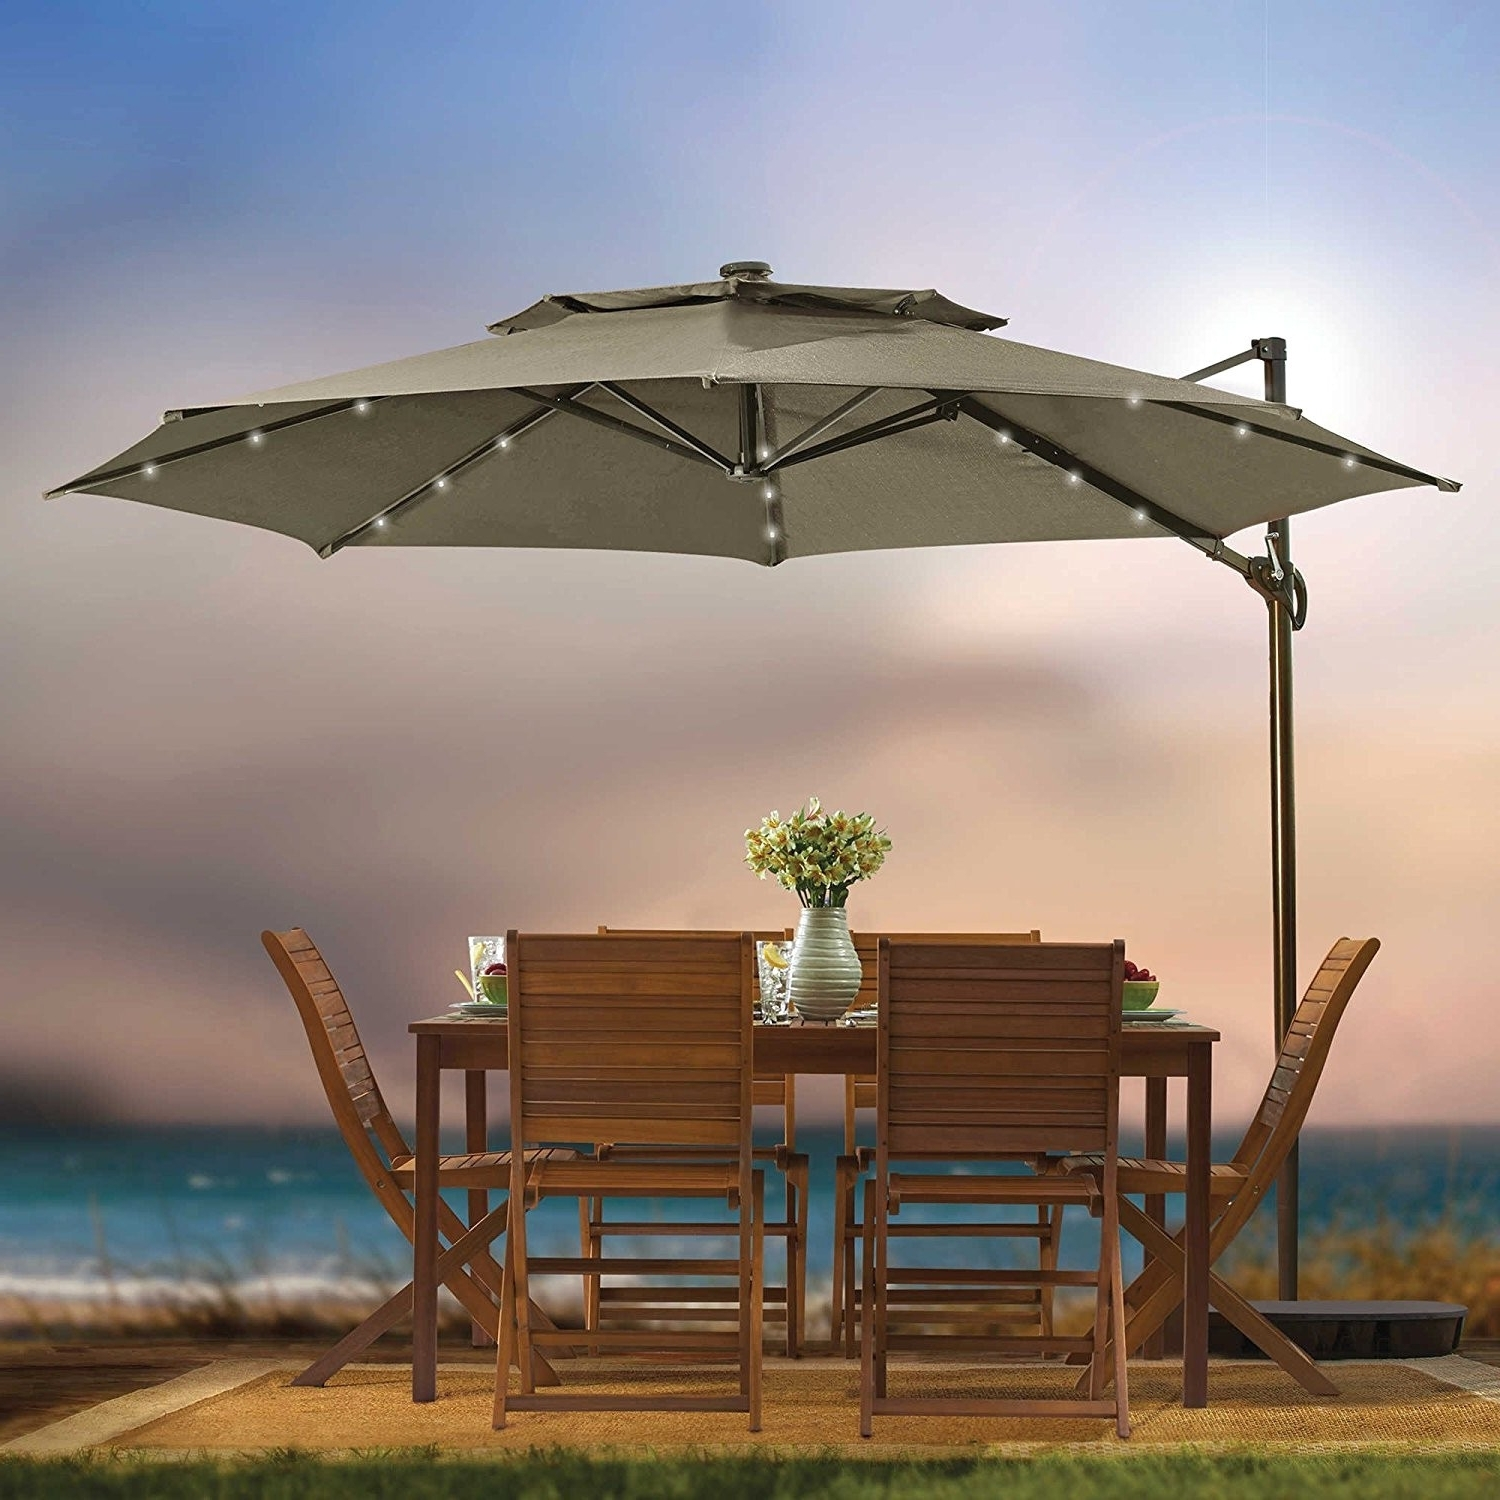 4 6 Foot Patio Umbrellas Awesome Amazon Sundale Outdoor 9 Feet Steel Pertaining To Most Current Unusual Patio Umbrellas (View 3 of 20)